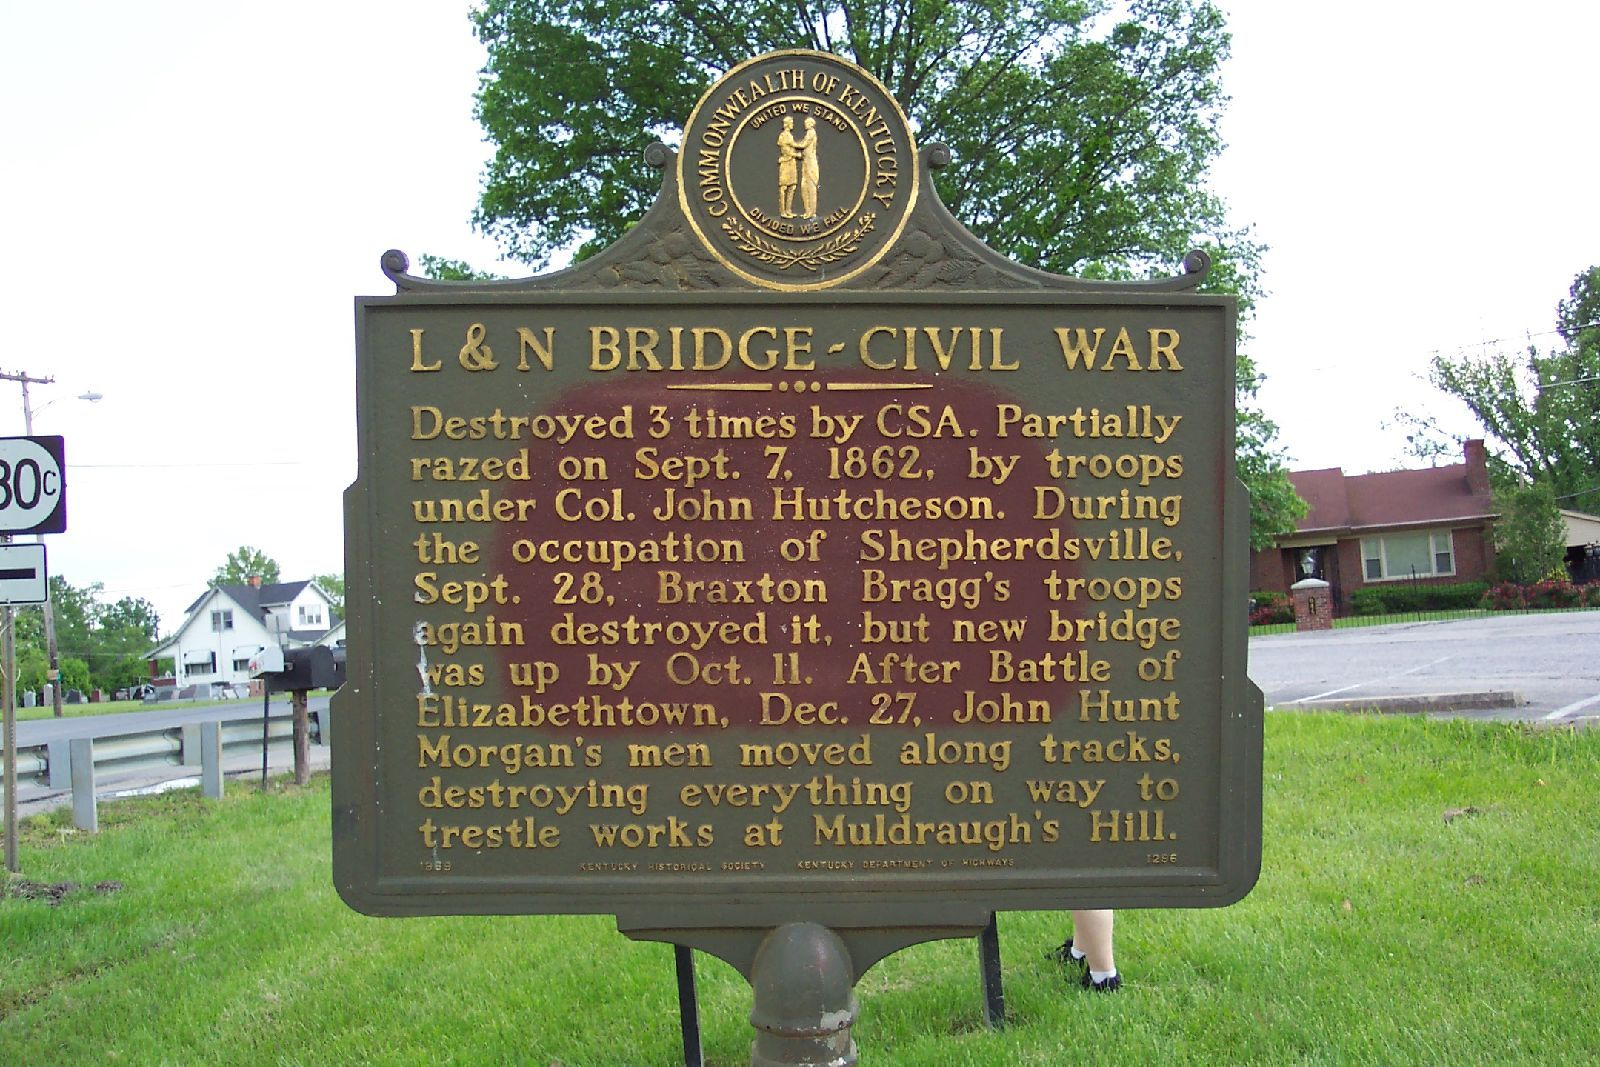 L&N Bridge monument. Fort DeWolf's prime purpose was to protect the railroad that passed over the Salt River in Bullitt County, Kentucky.